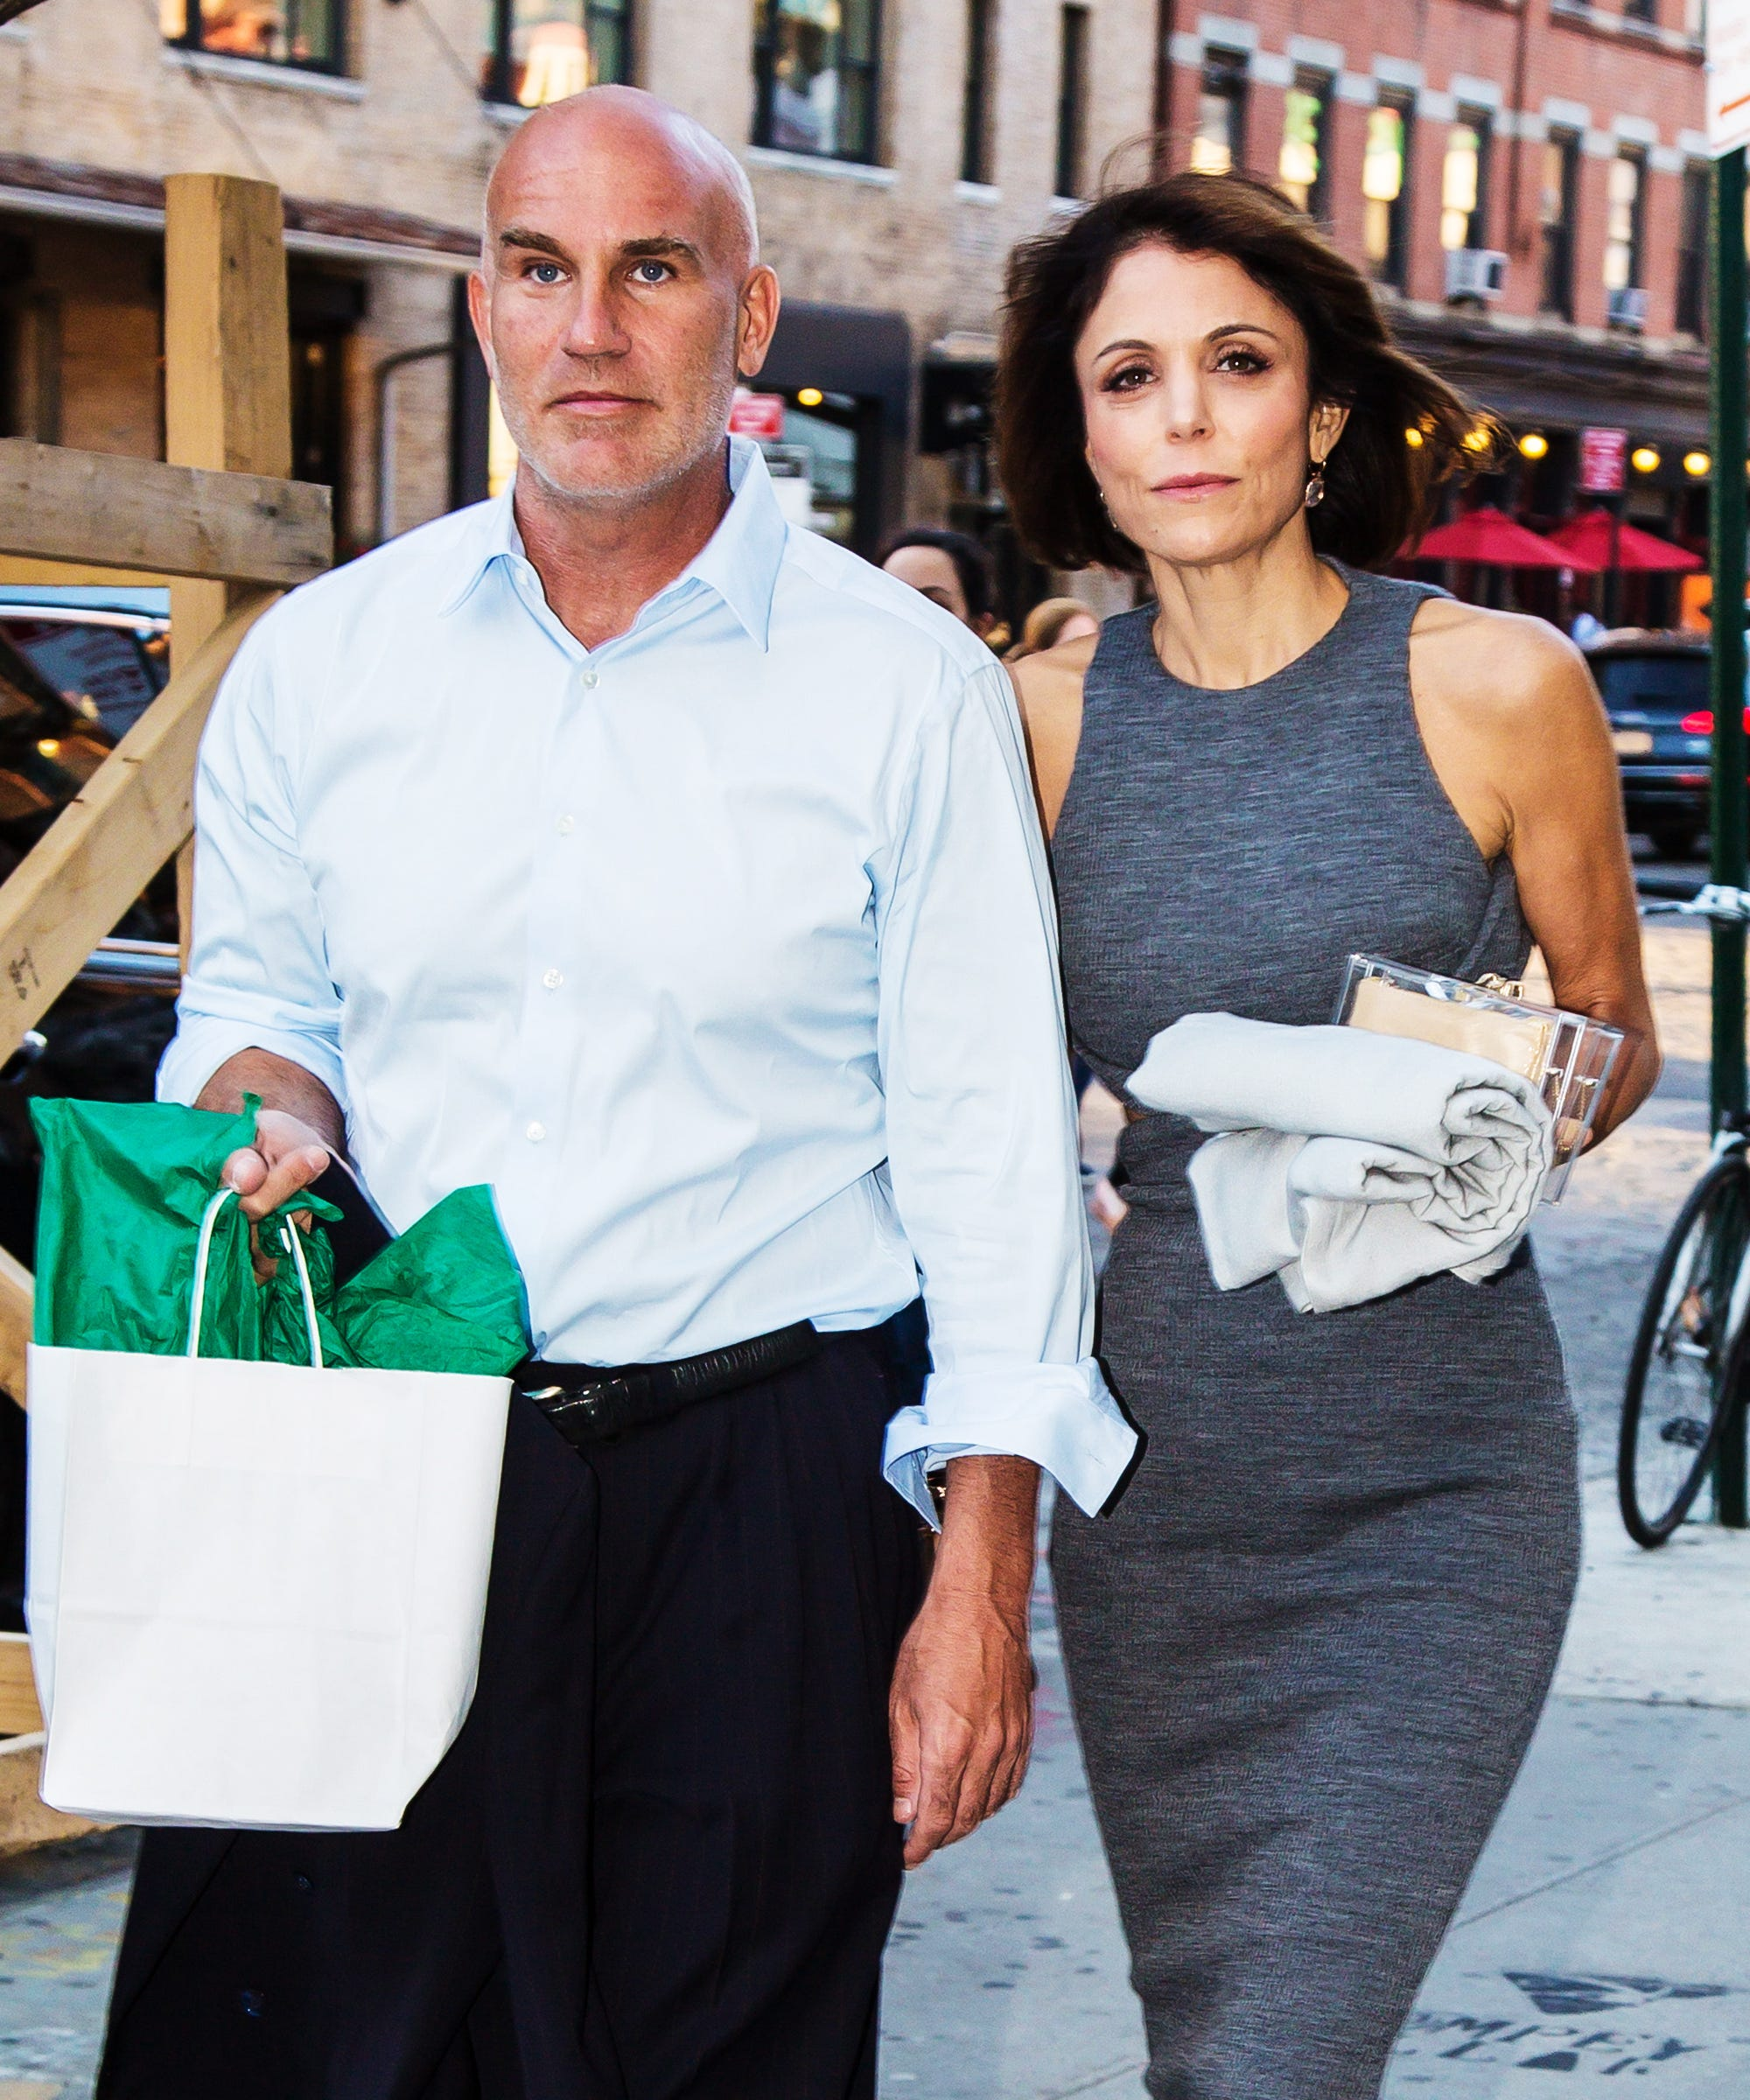 Bethenny Frankel Breaks Silence On Boyfriend's Sudden Death